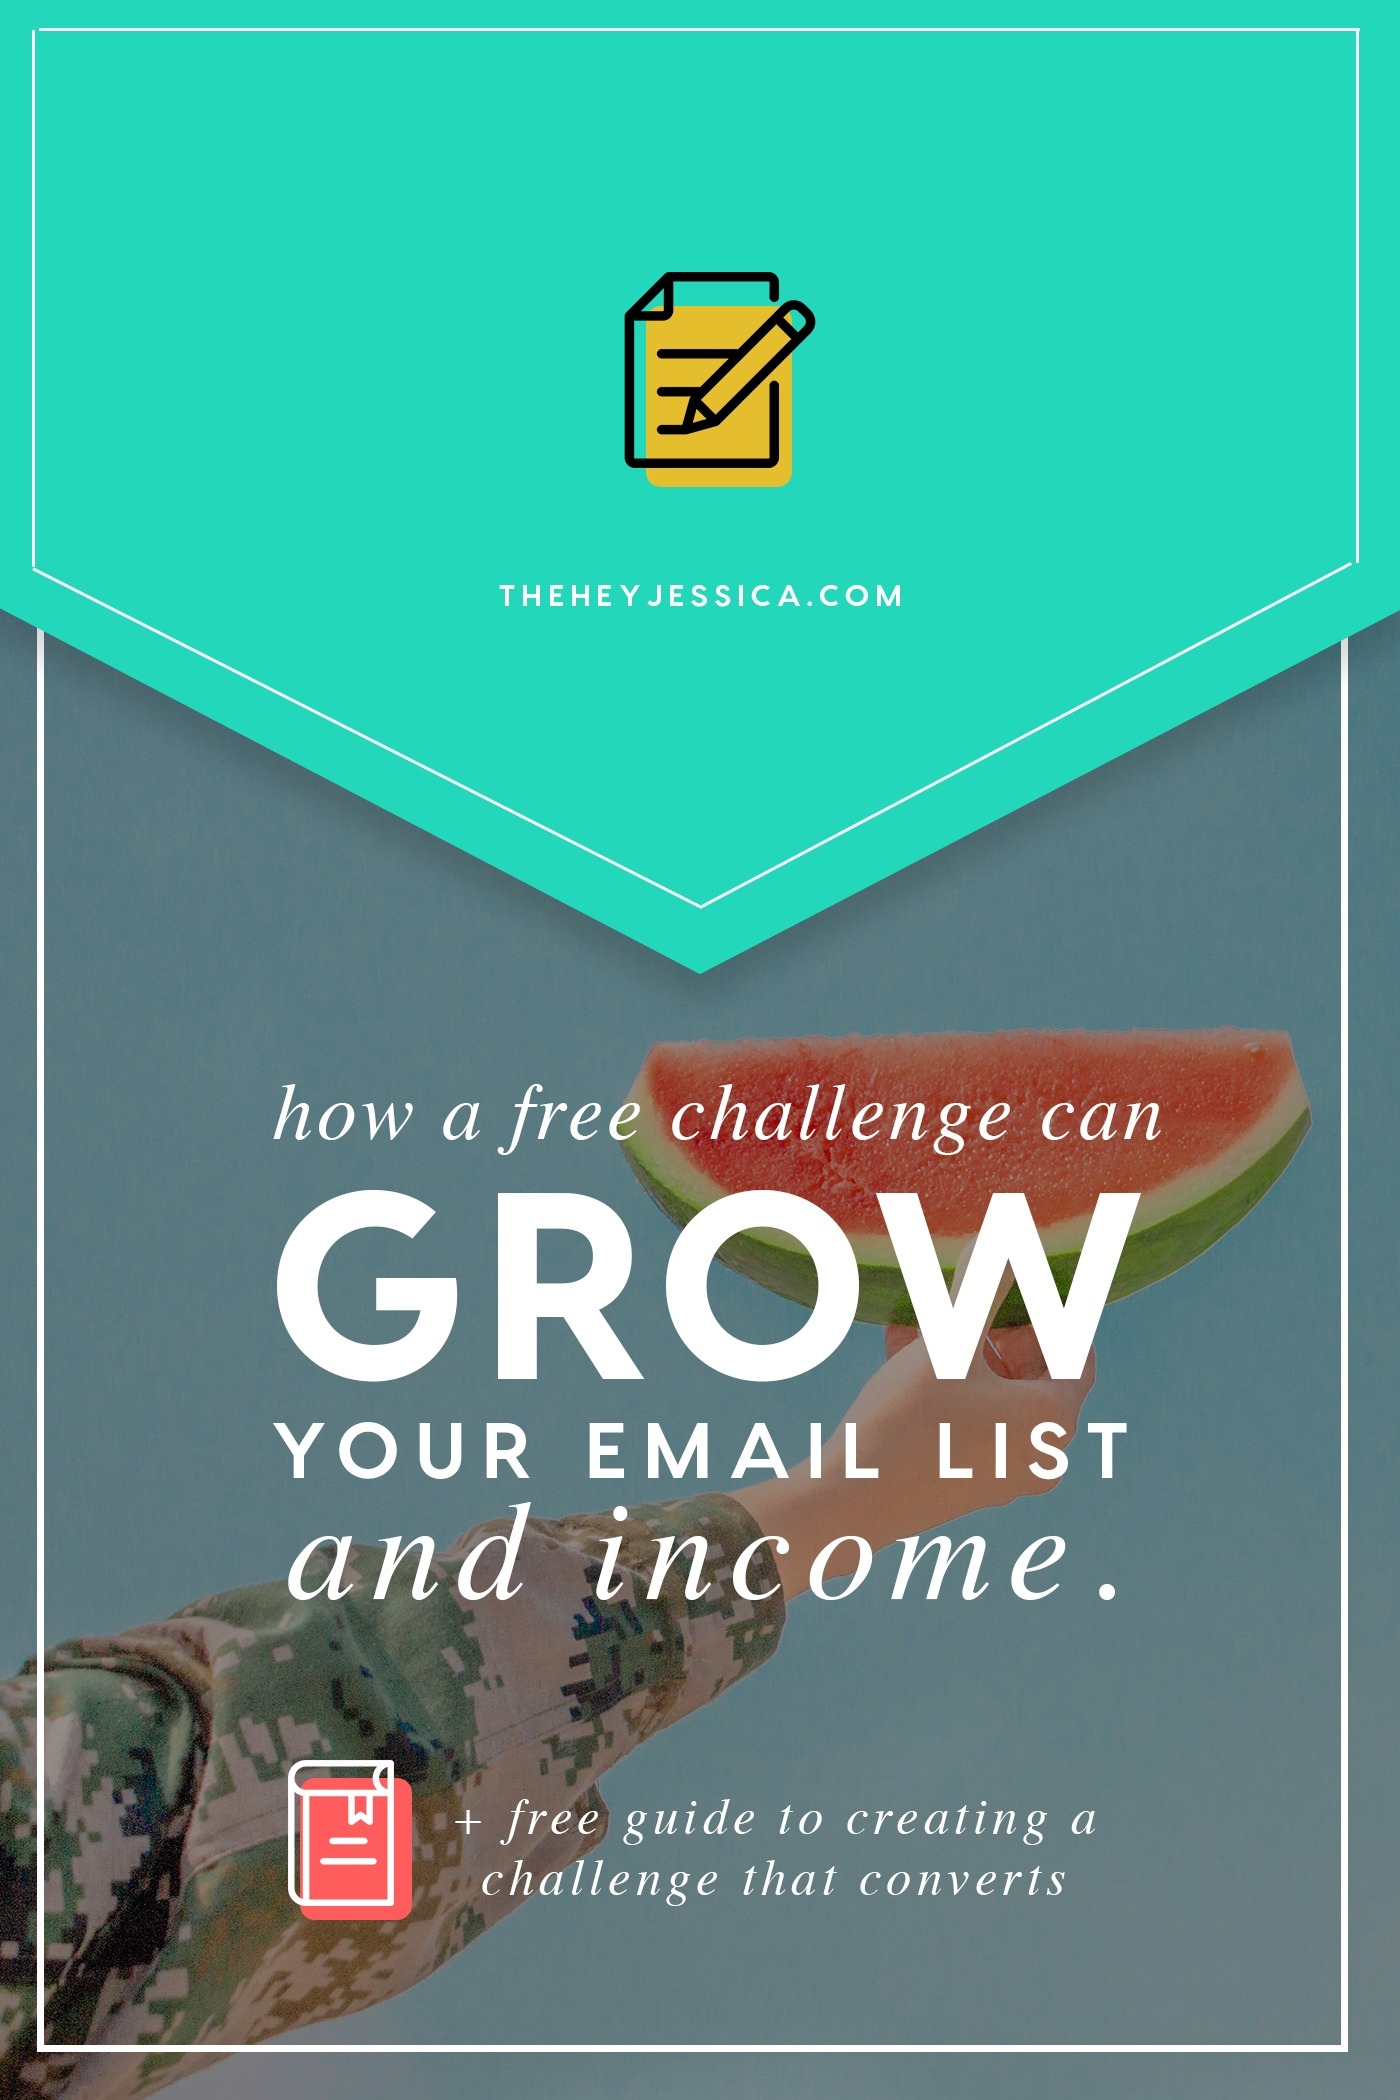 How a FREE CHALLENGE can grow your email list and your income